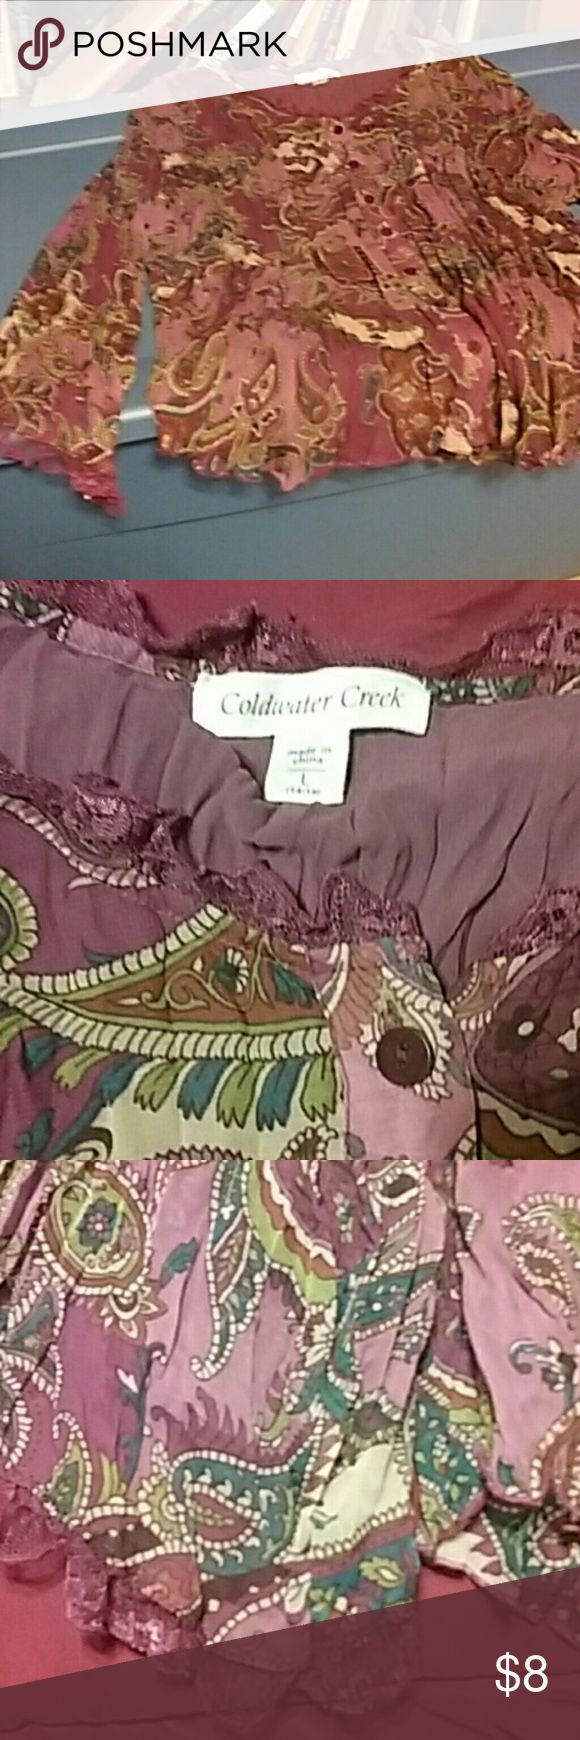 Paisley design peasant look shirt size large plum, Cold water creek paisley designed, plum,green,and cream colors beautiful. Coldwater Creek Tops Blouses